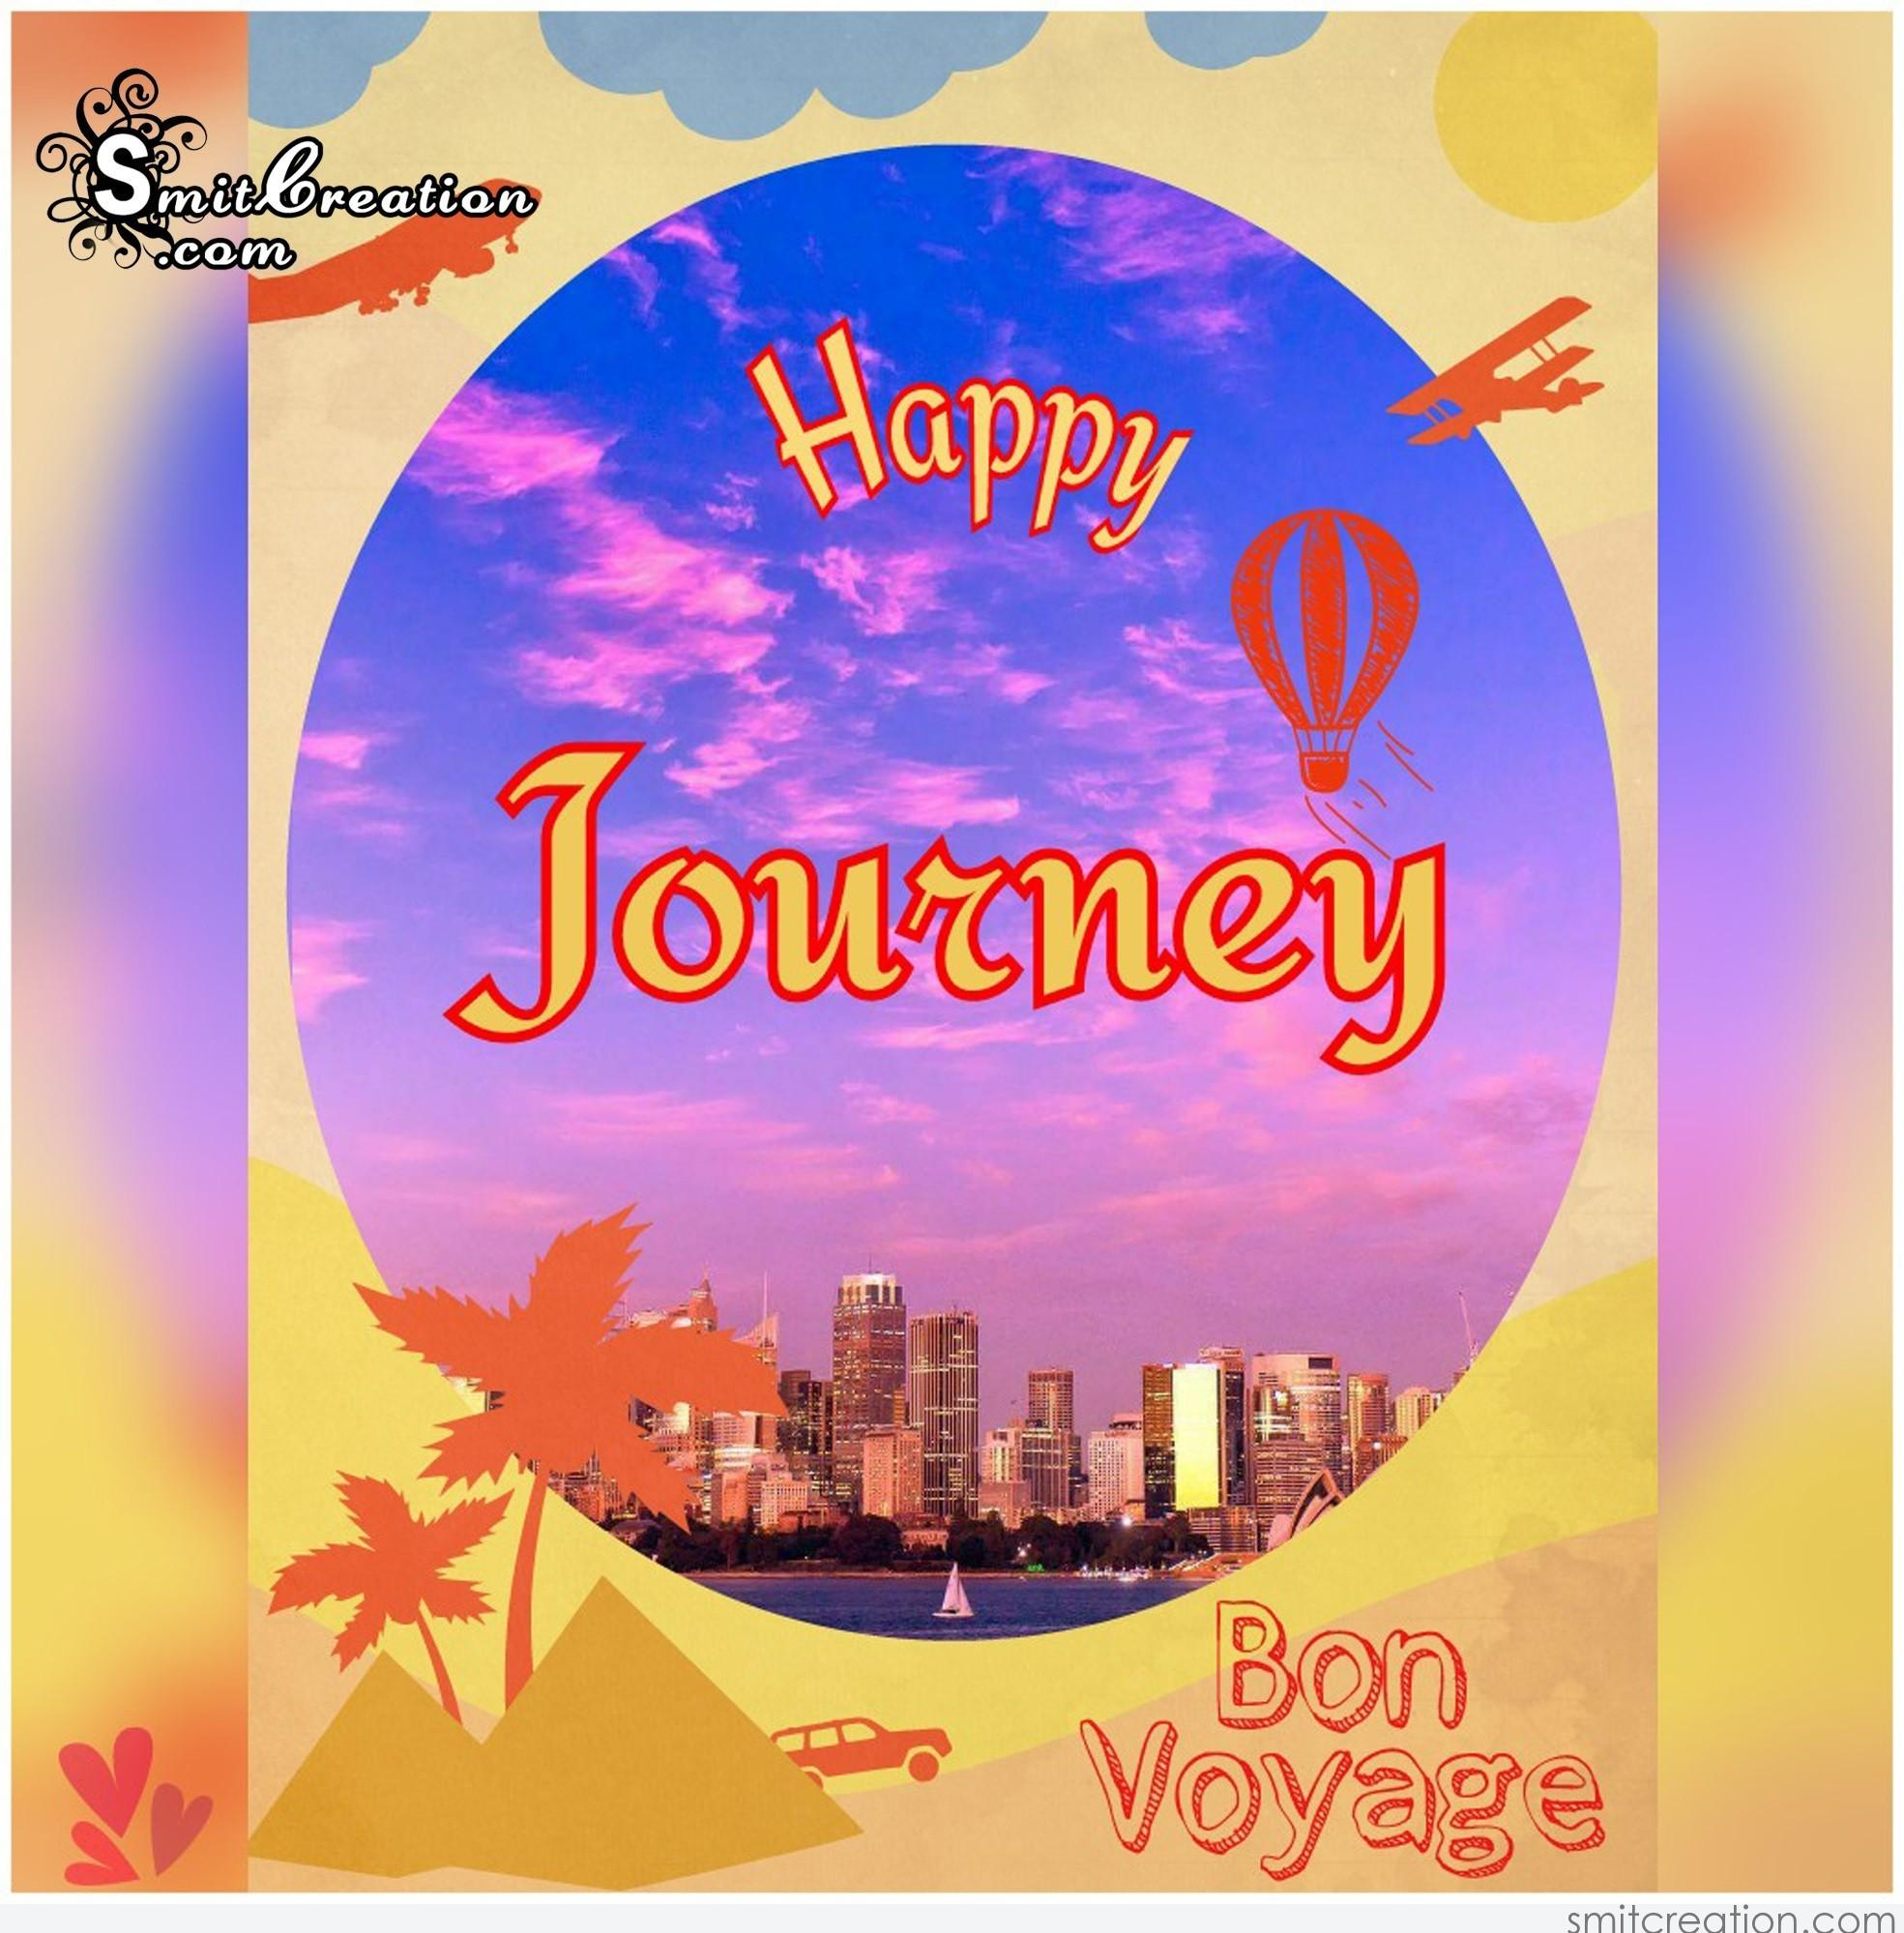 Happy journey pictures and graphics smitcreation download image m4hsunfo Image collections